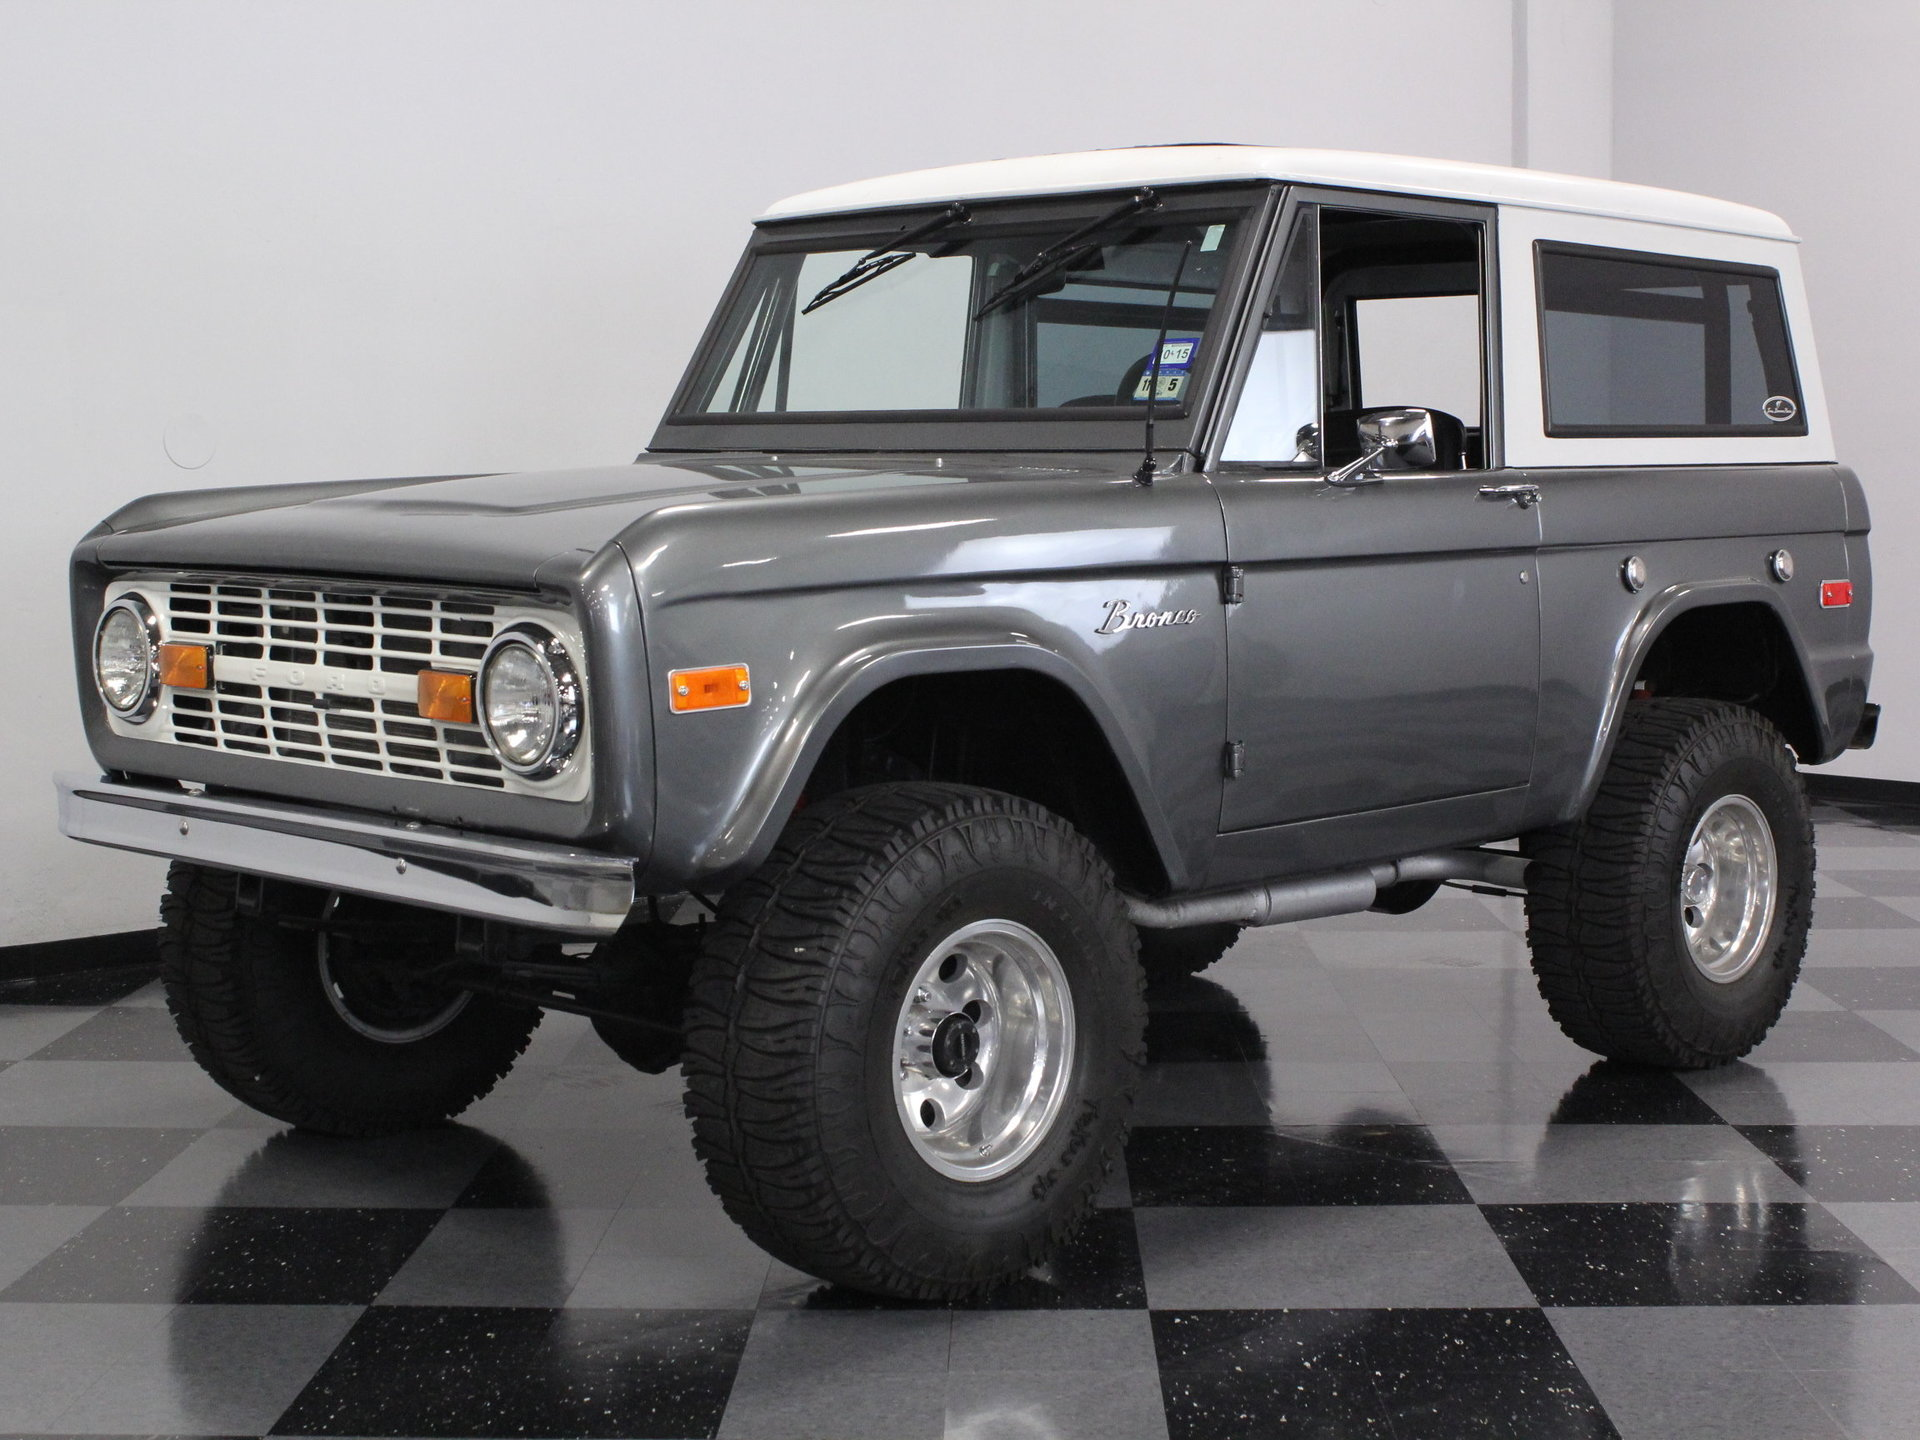 1970 Ford Bronco | Streetside Classics - The Nation's Trusted Classic Car Consignment Dealer